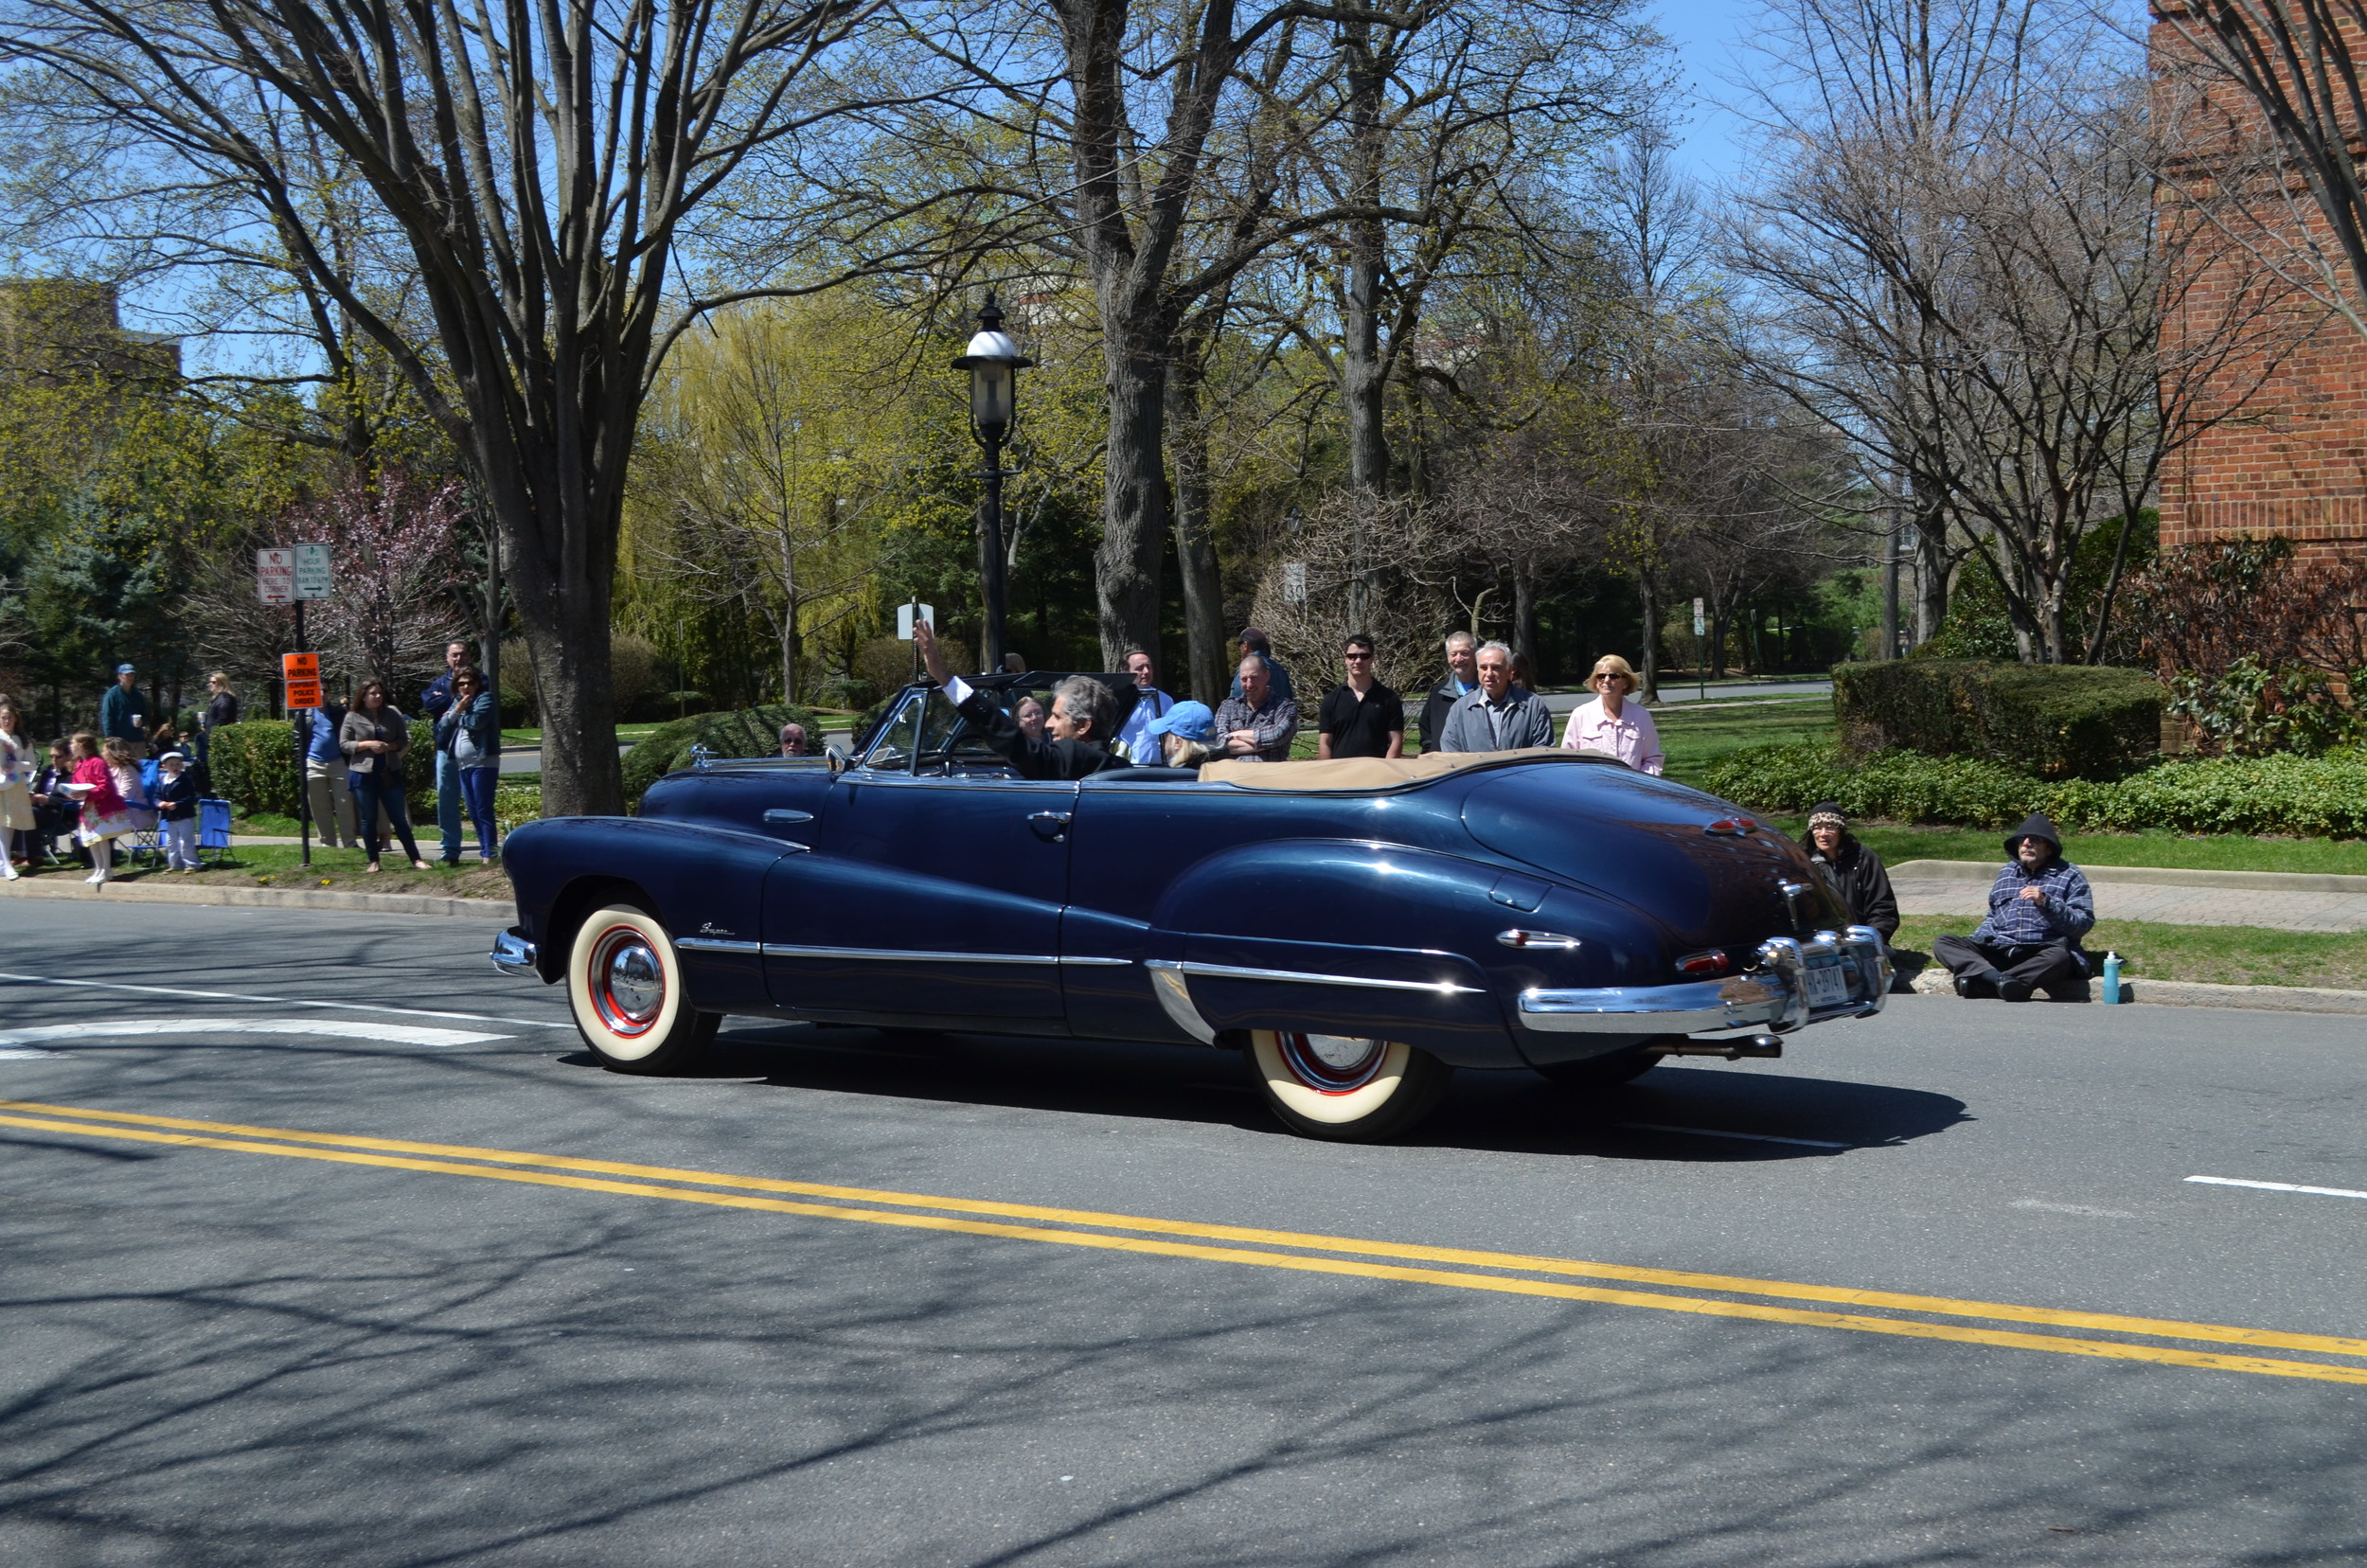 2014 Easter Parade, Garden City